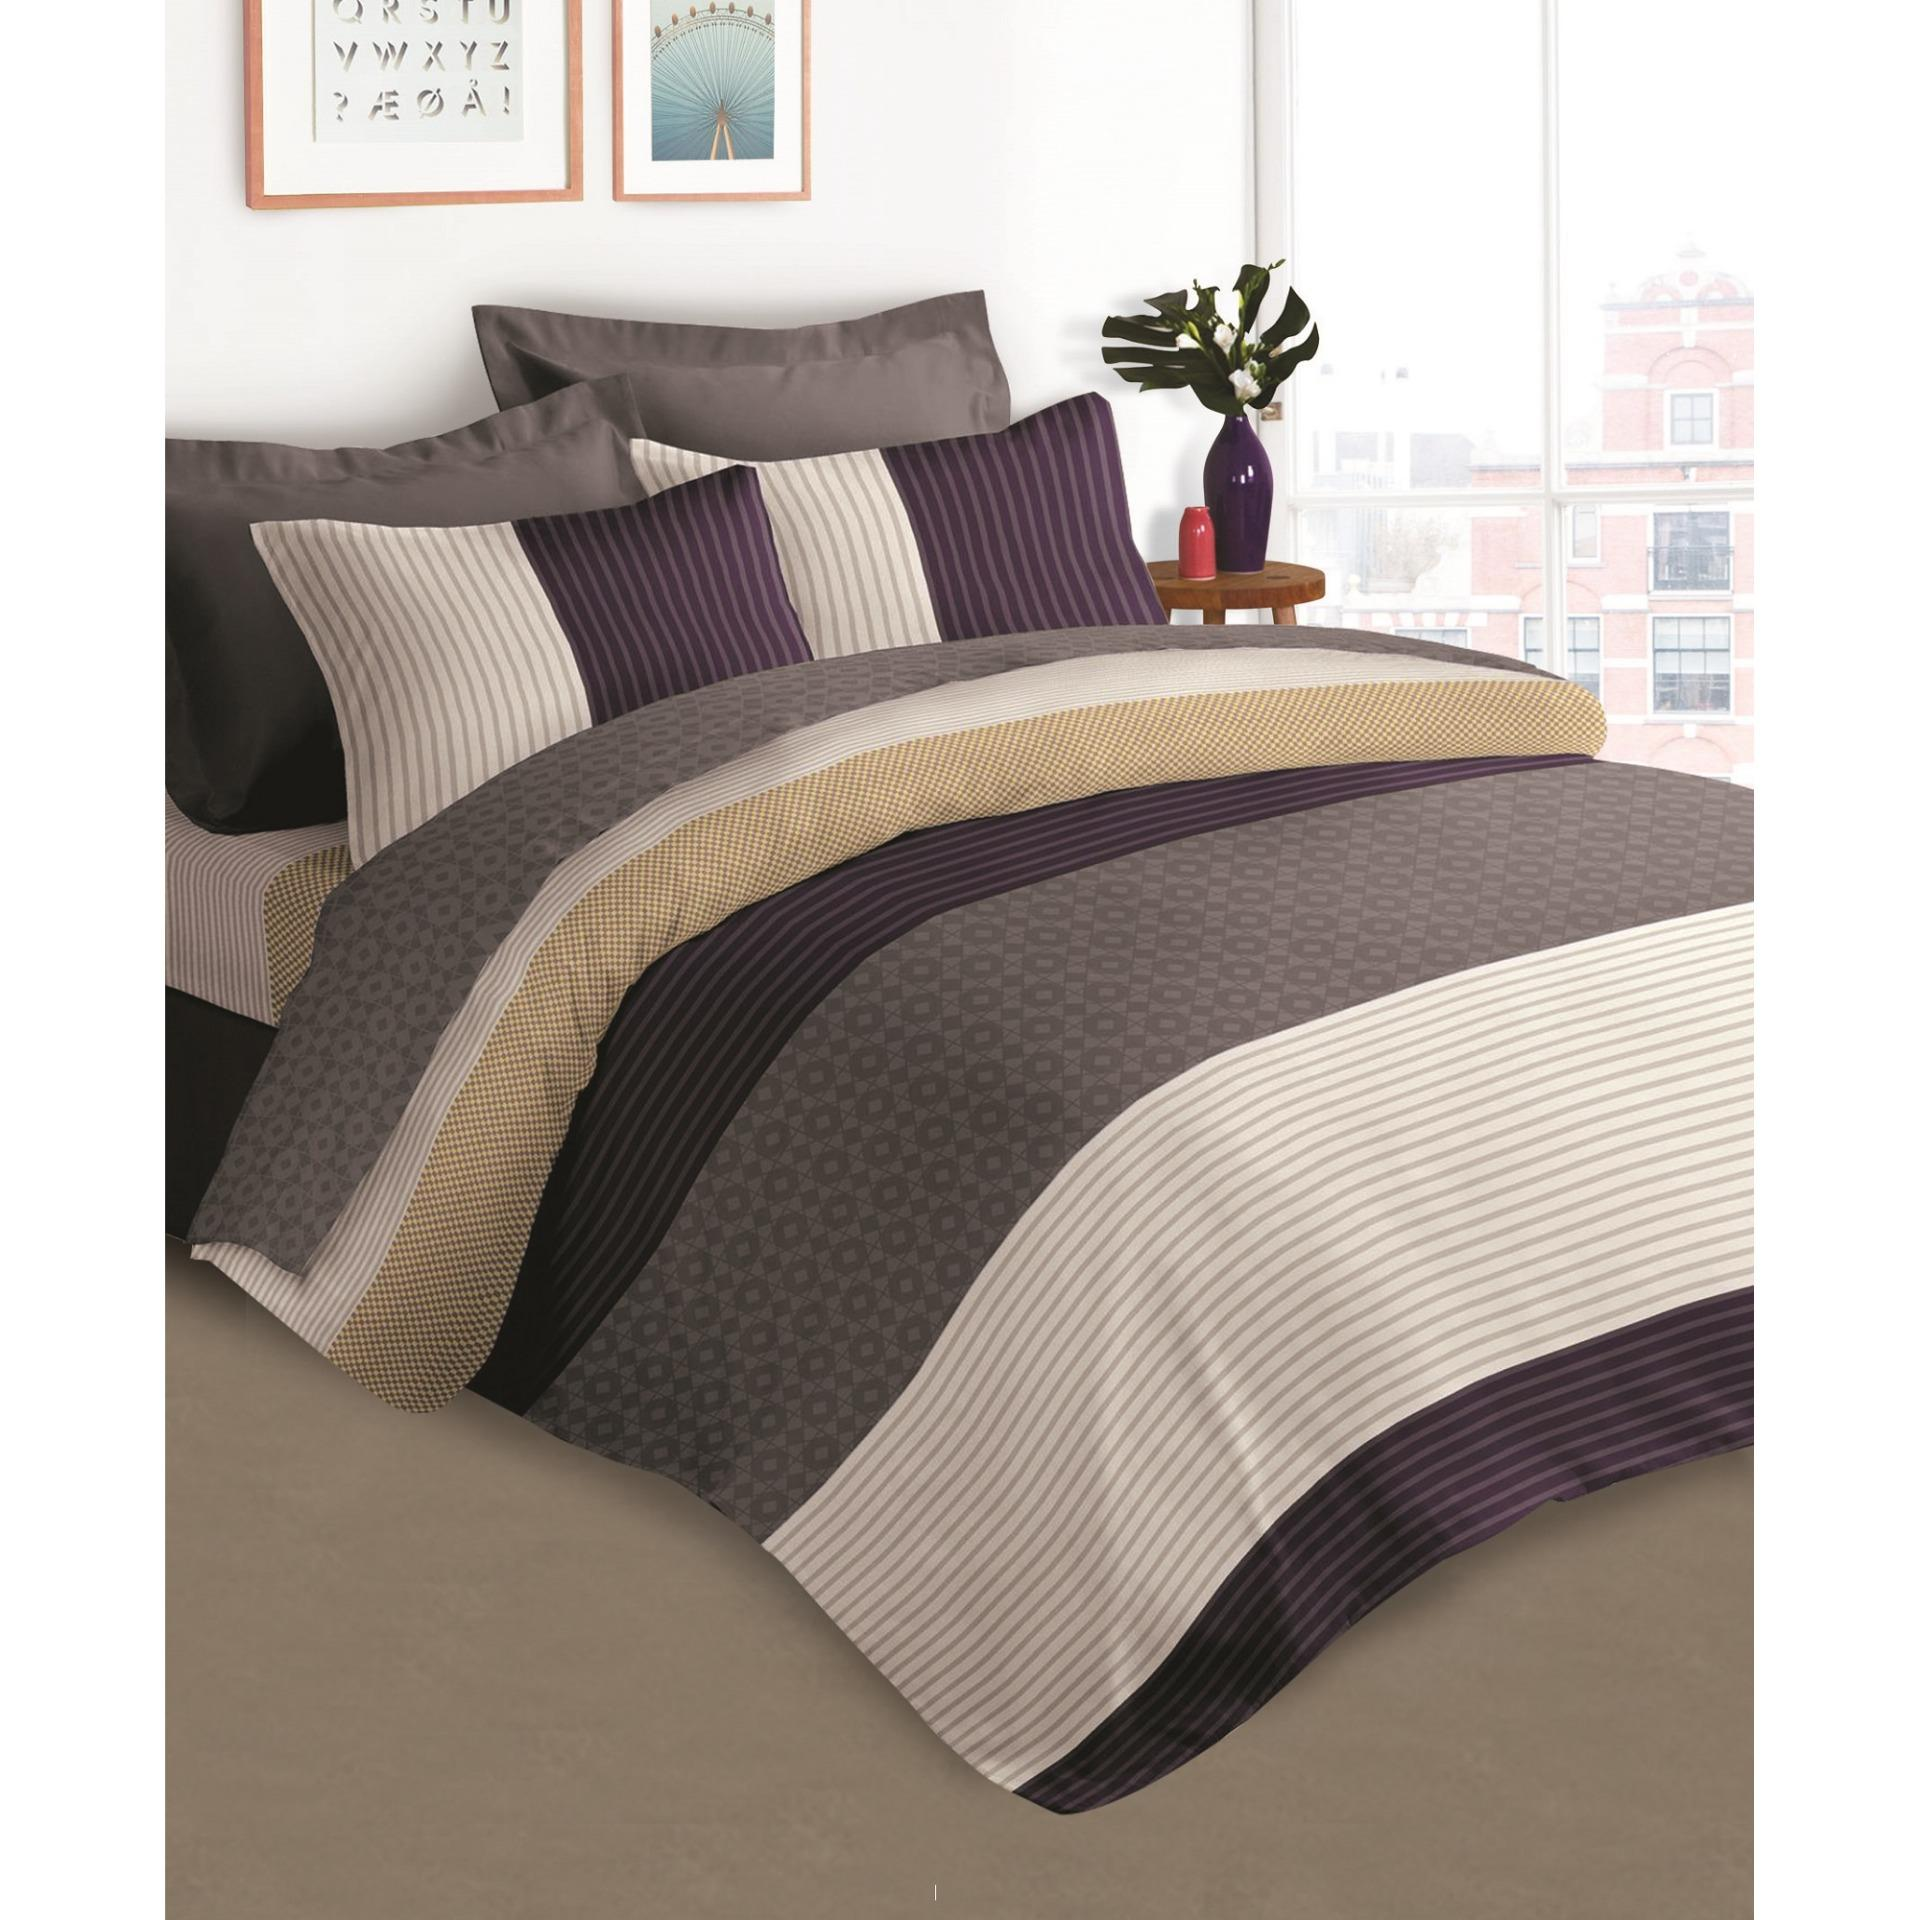 Compare Price Akemi Cotton Select Affluence Larkin Quilt Cover Set On Singapore